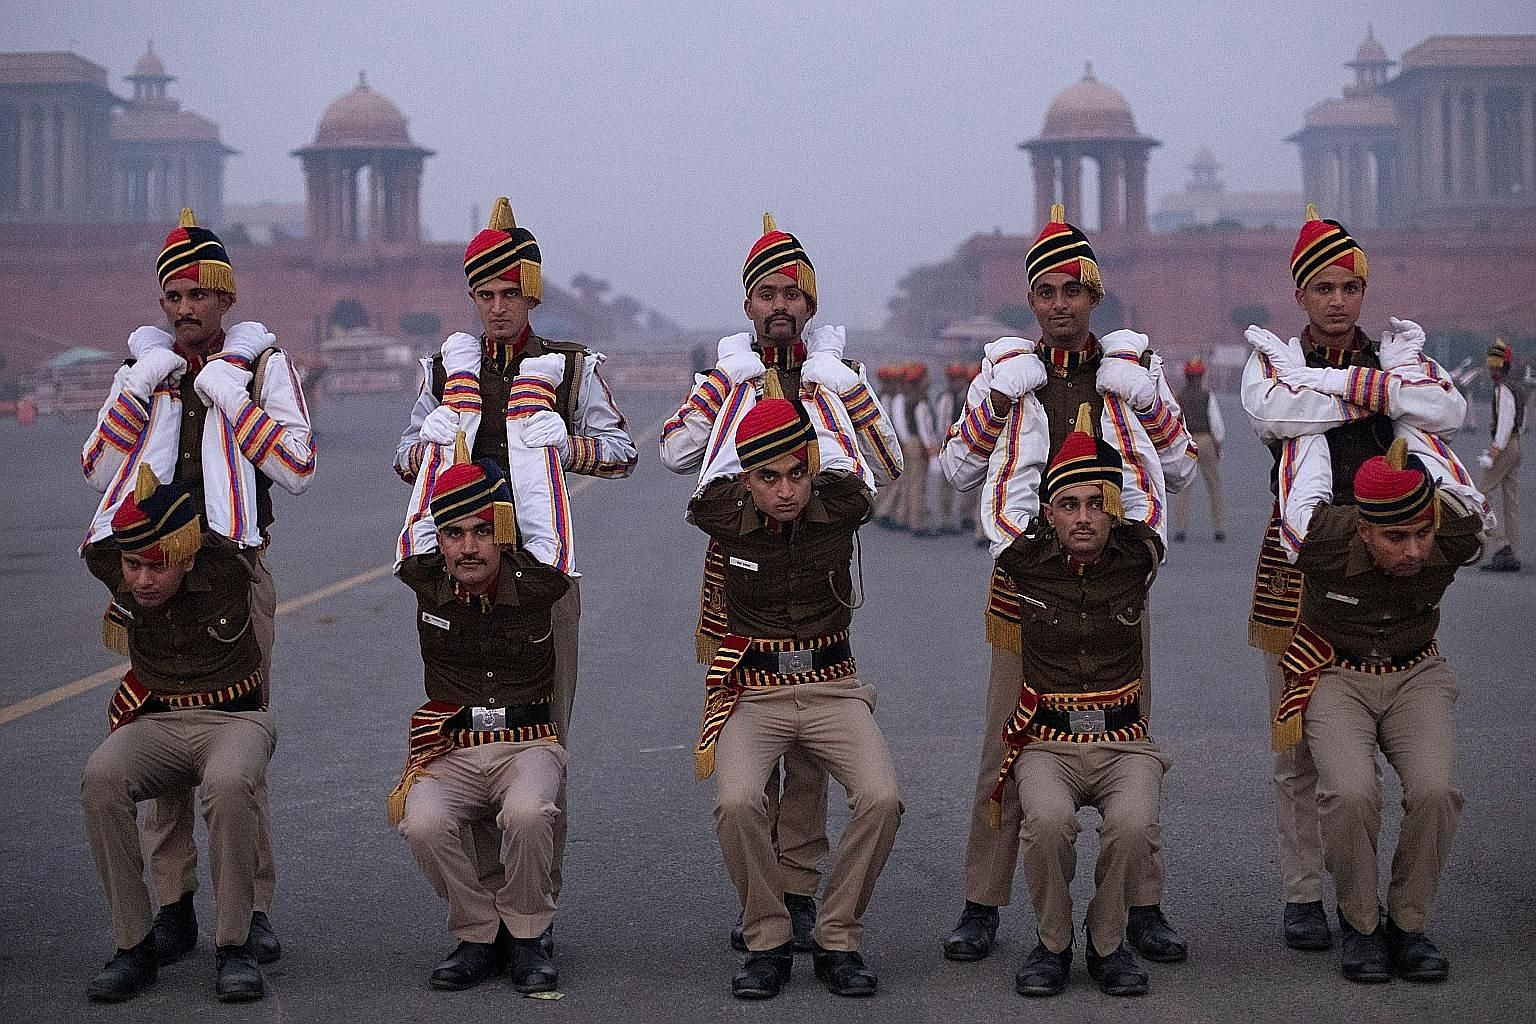 Members of the Delhi Police stretching before a Republic Day parade rehearsal in New Delhi yesterday morning. The police are among the various contingents from different forces preparing for the event. India celebrates Republic Day on Jan 26, to comm